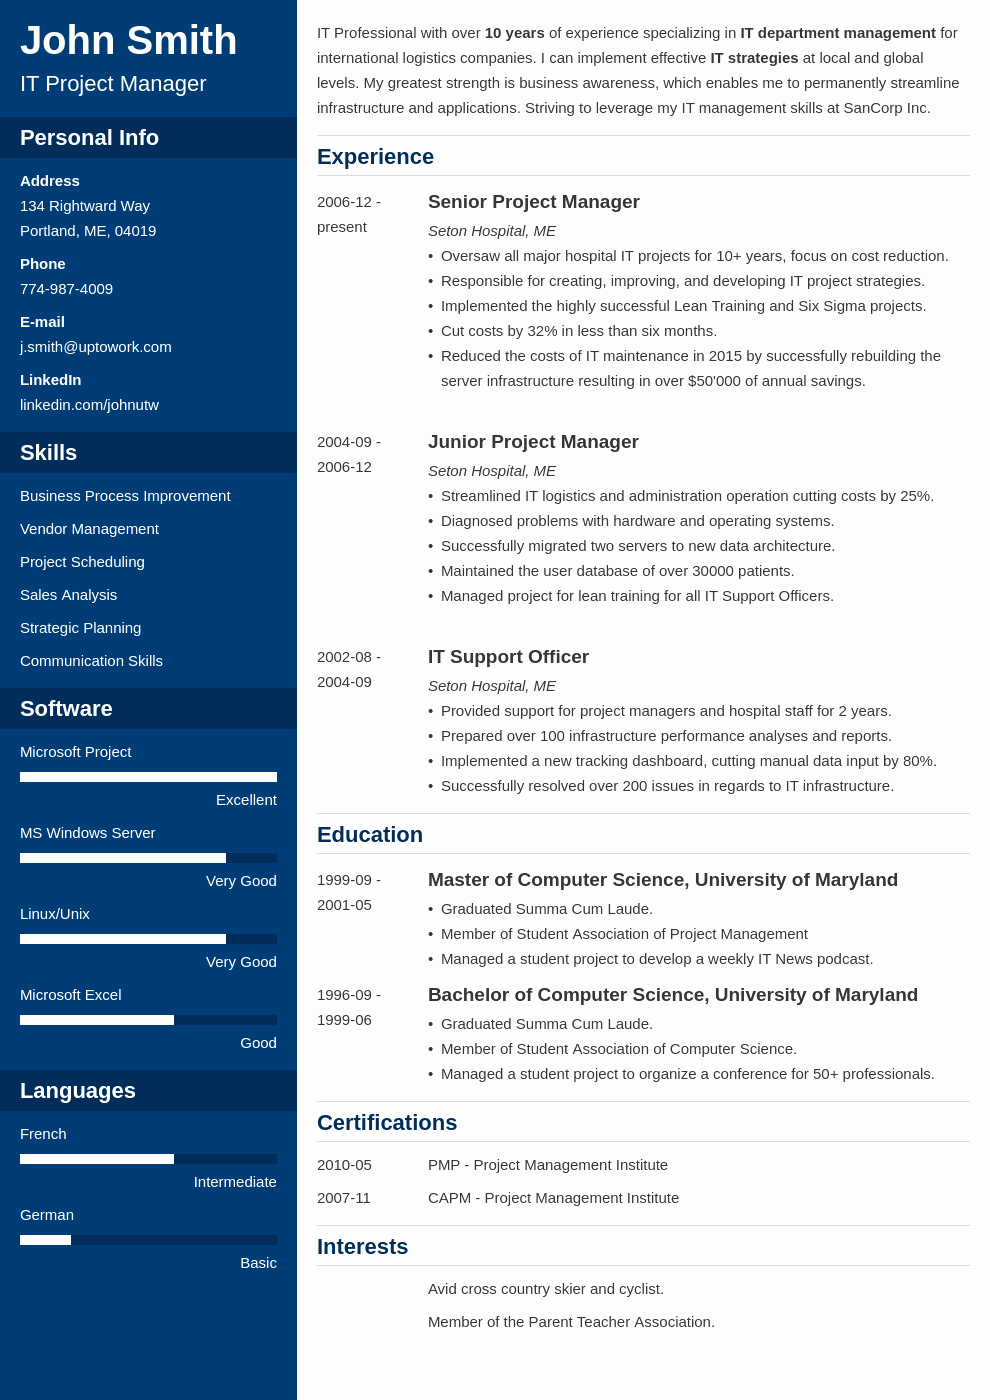 Resume Free Templates to Download Inspirational 20 Cv Templates Create Your Professional Cv In 5 Minutes